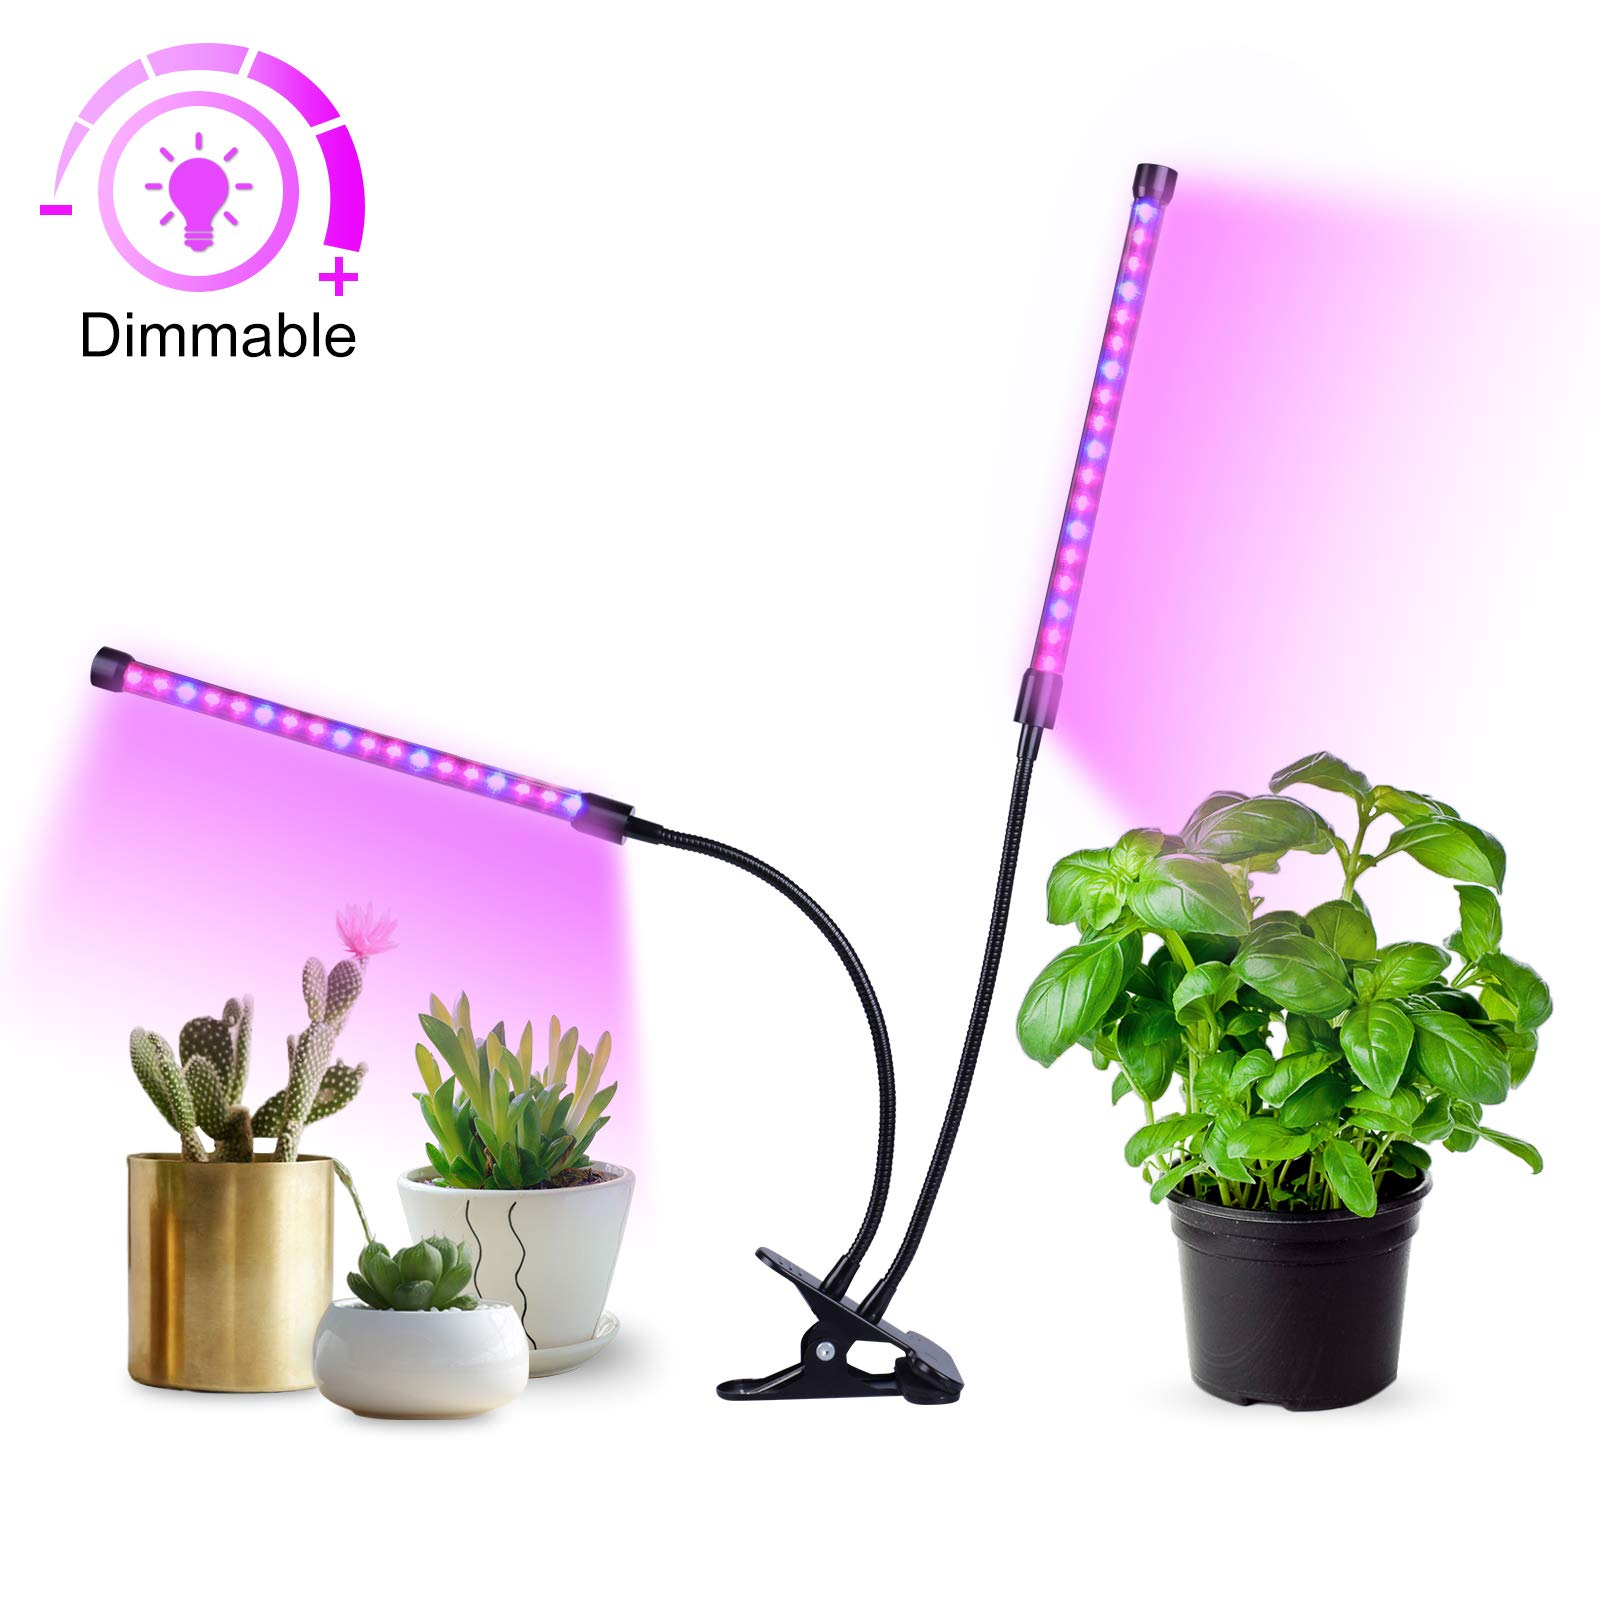 MIXC LED Grow Lamp Light, 18W USB Dimmable Indoor Plant Growing Light with 5-Level Brightness 3/6/12H Timer Adjustable 360 Degree Gooseneck for Seedling Tray Succulent Gardening Plants